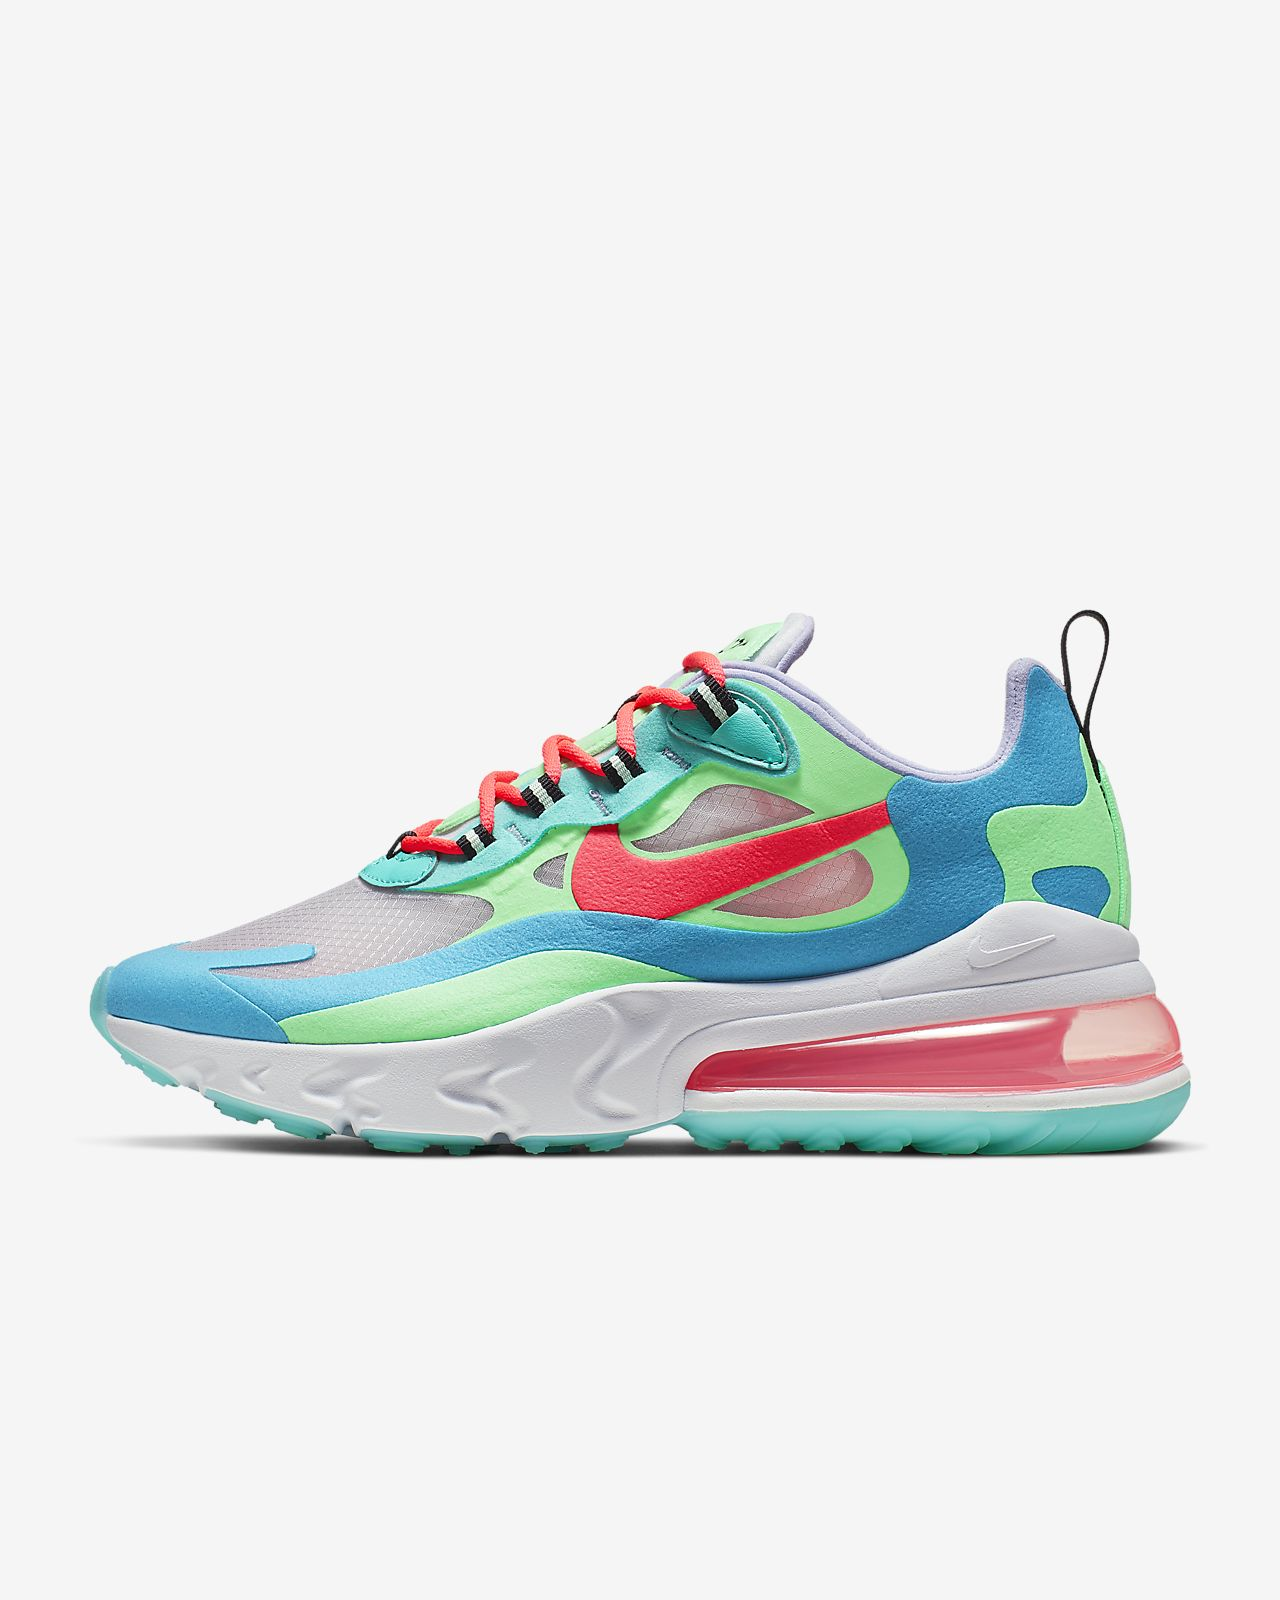 Air Movement Femme 270 »Pour React« Nike Max Chaussure Psychedelic KcF1lJ3T